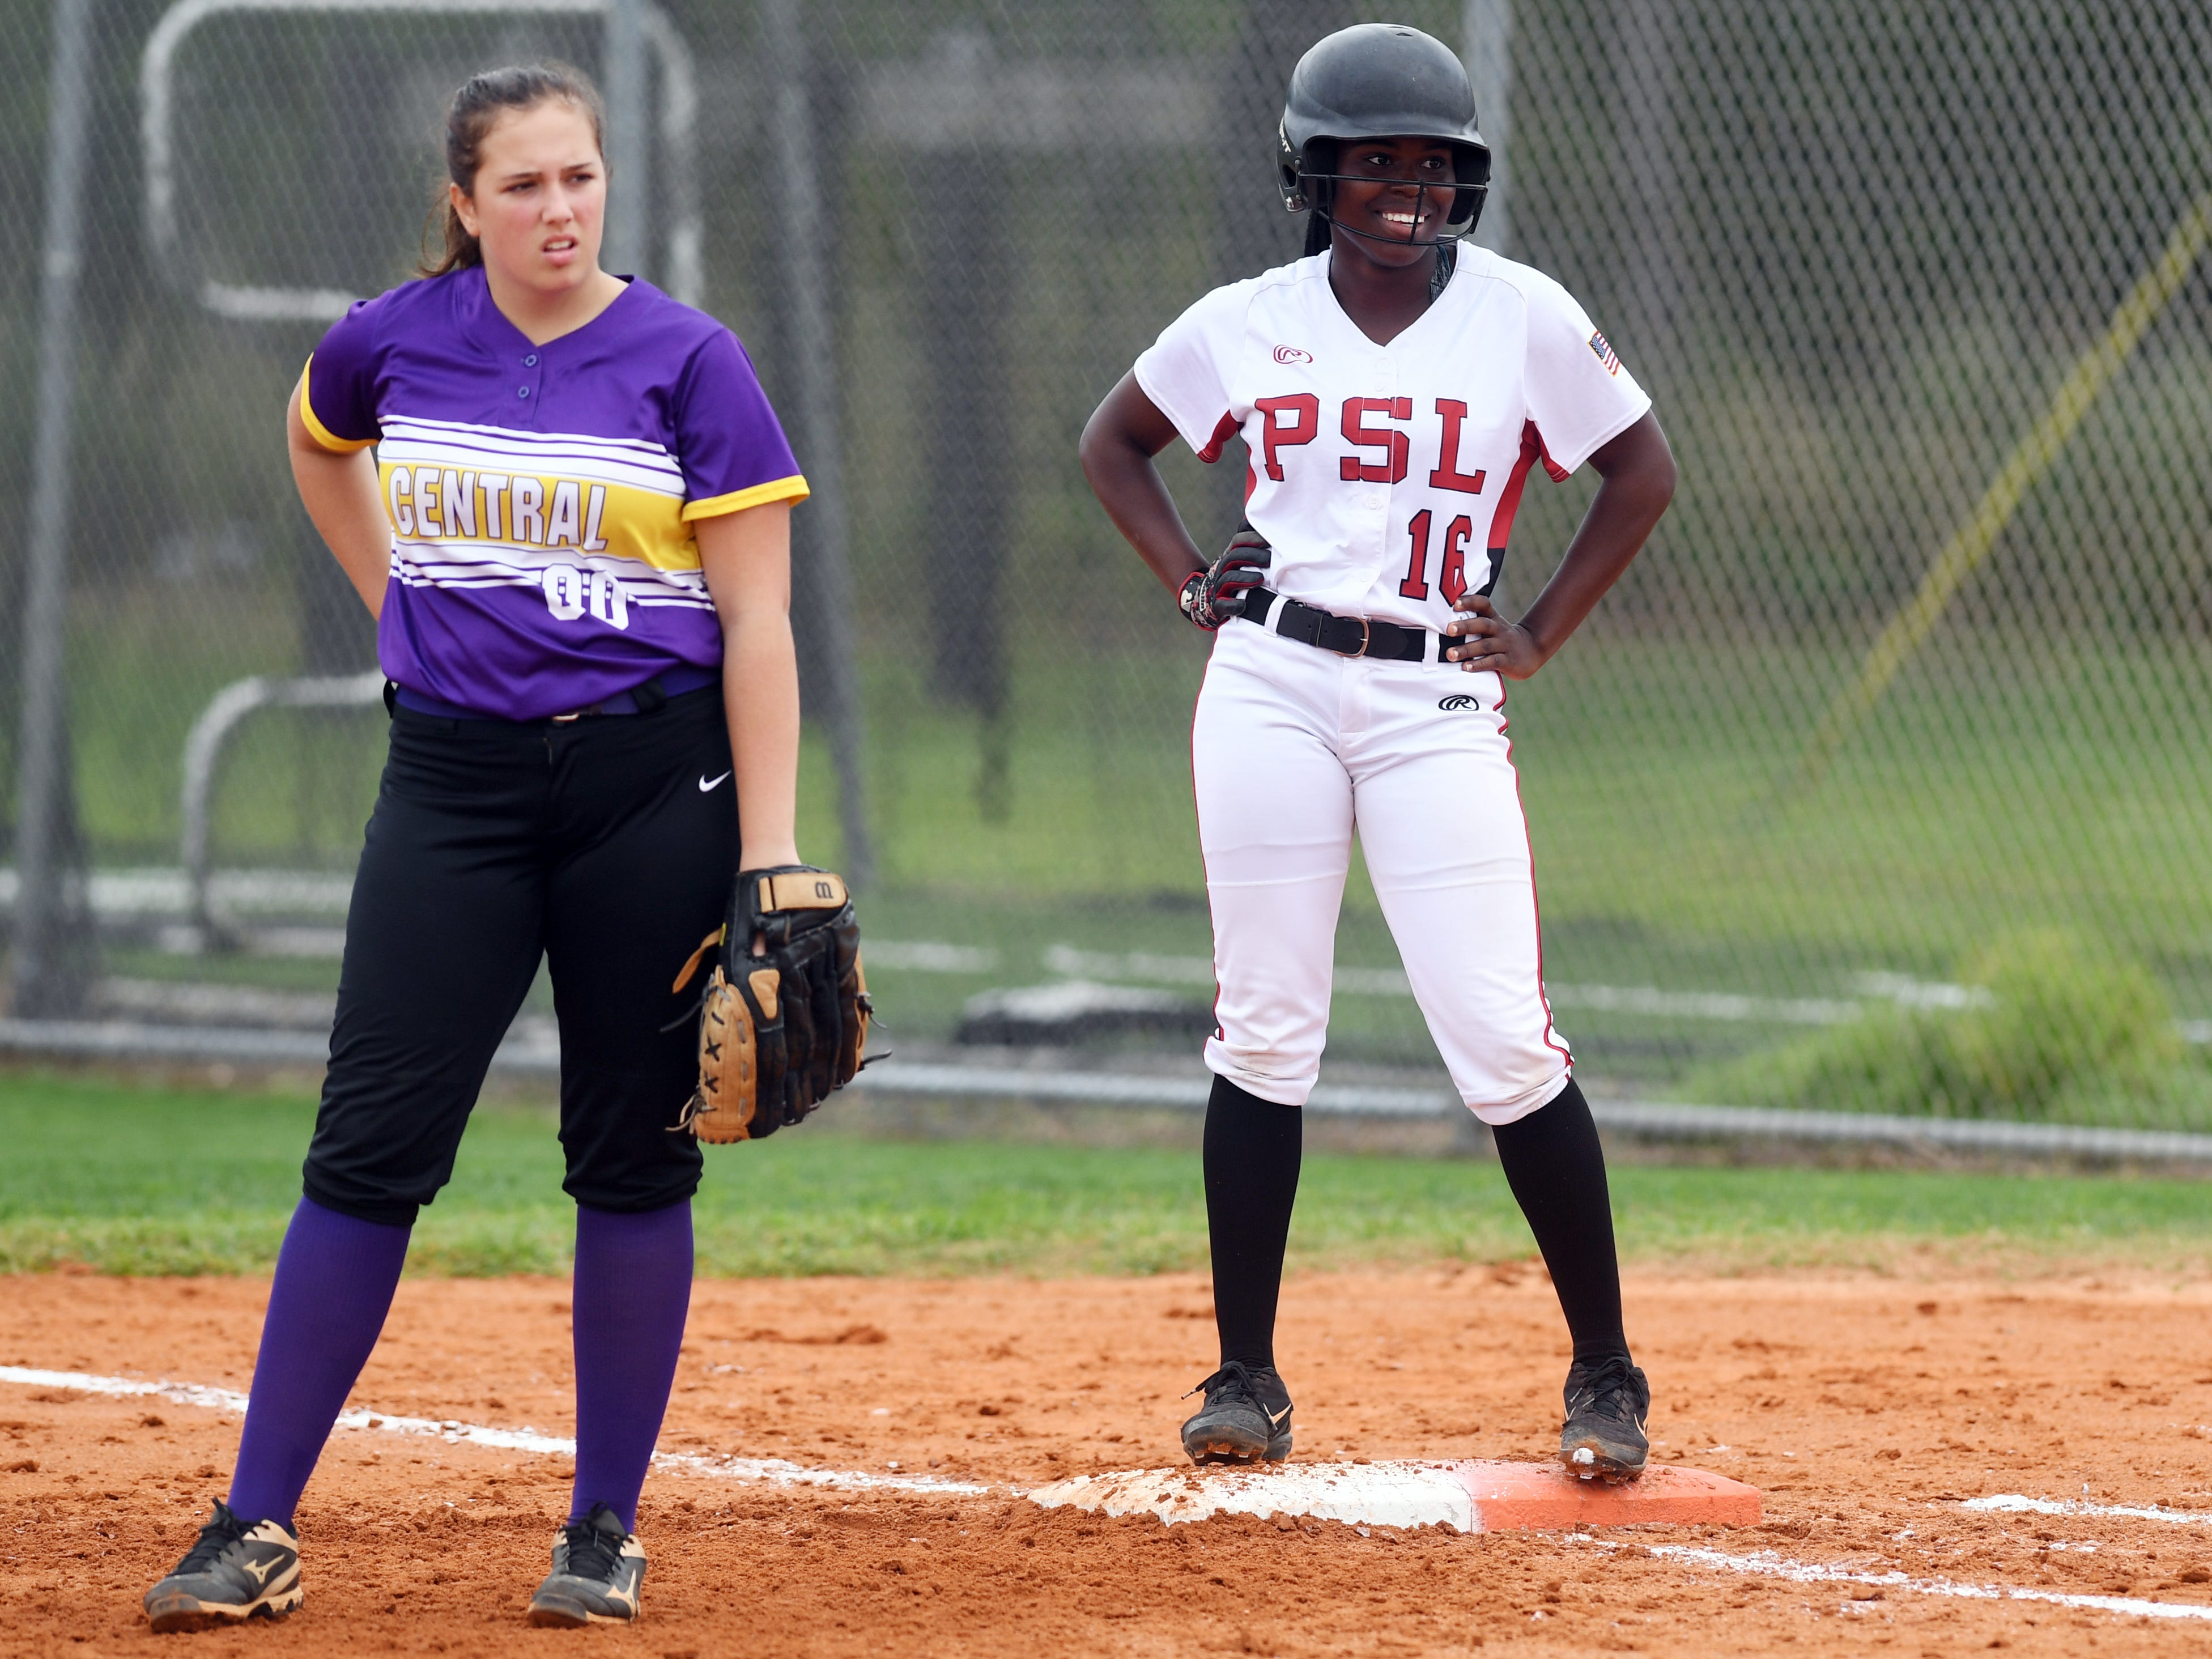 Port St. Lucie High School hosted Fort Pierce Central on Tuesday, March 5, 2019 for a softball game in Port St. Lucie.